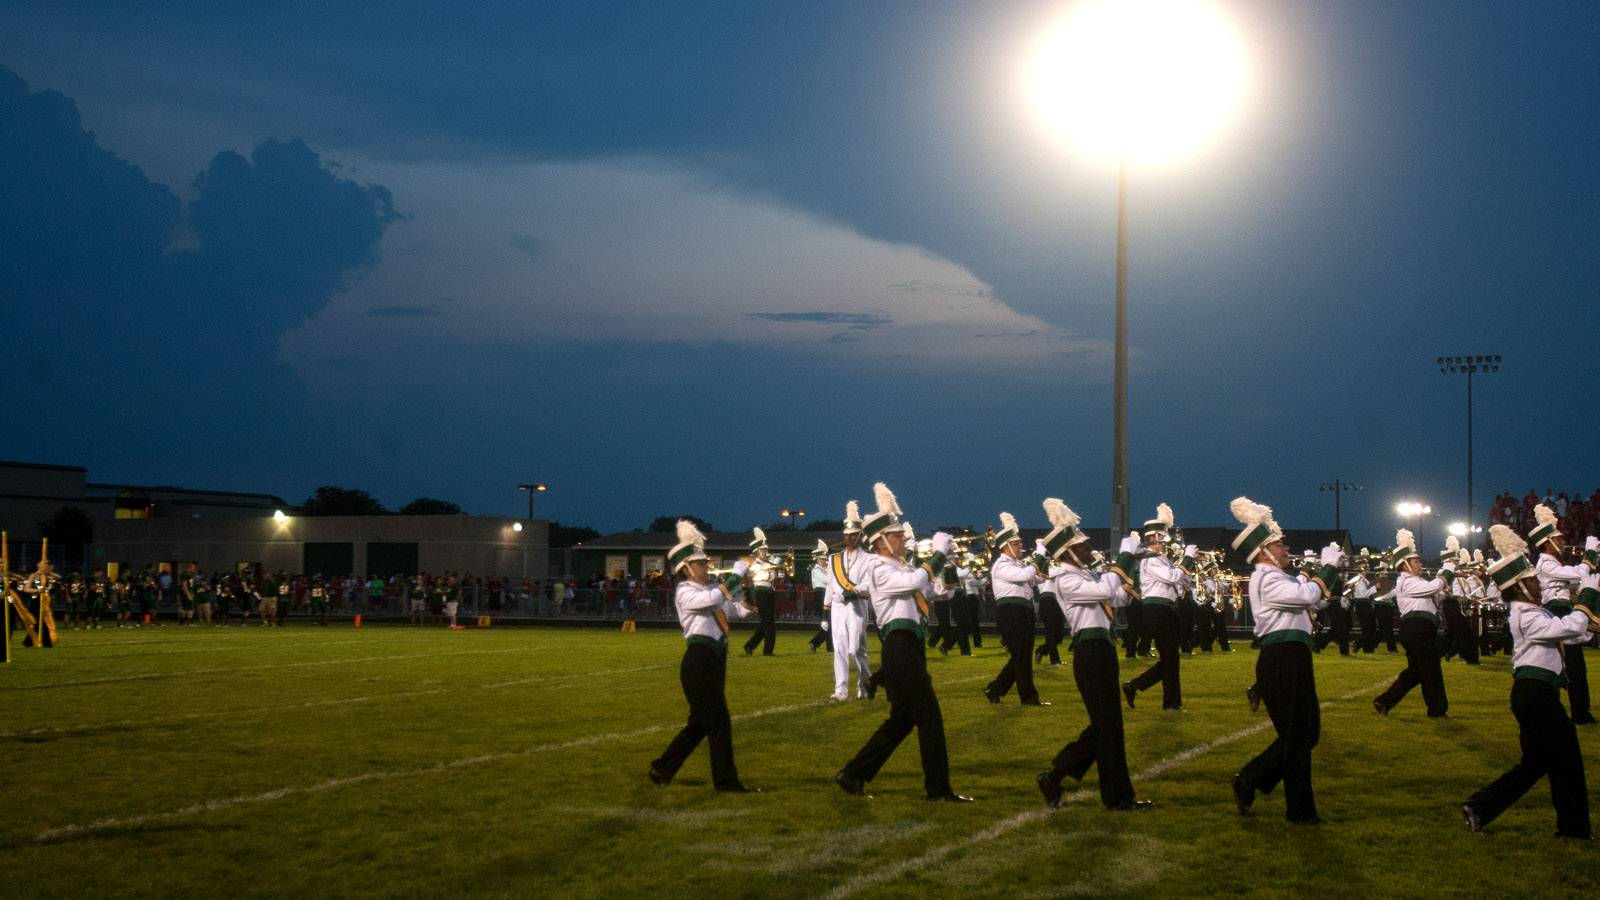 The Waubonsie Valley band plays under ominous skies before the start of the game.